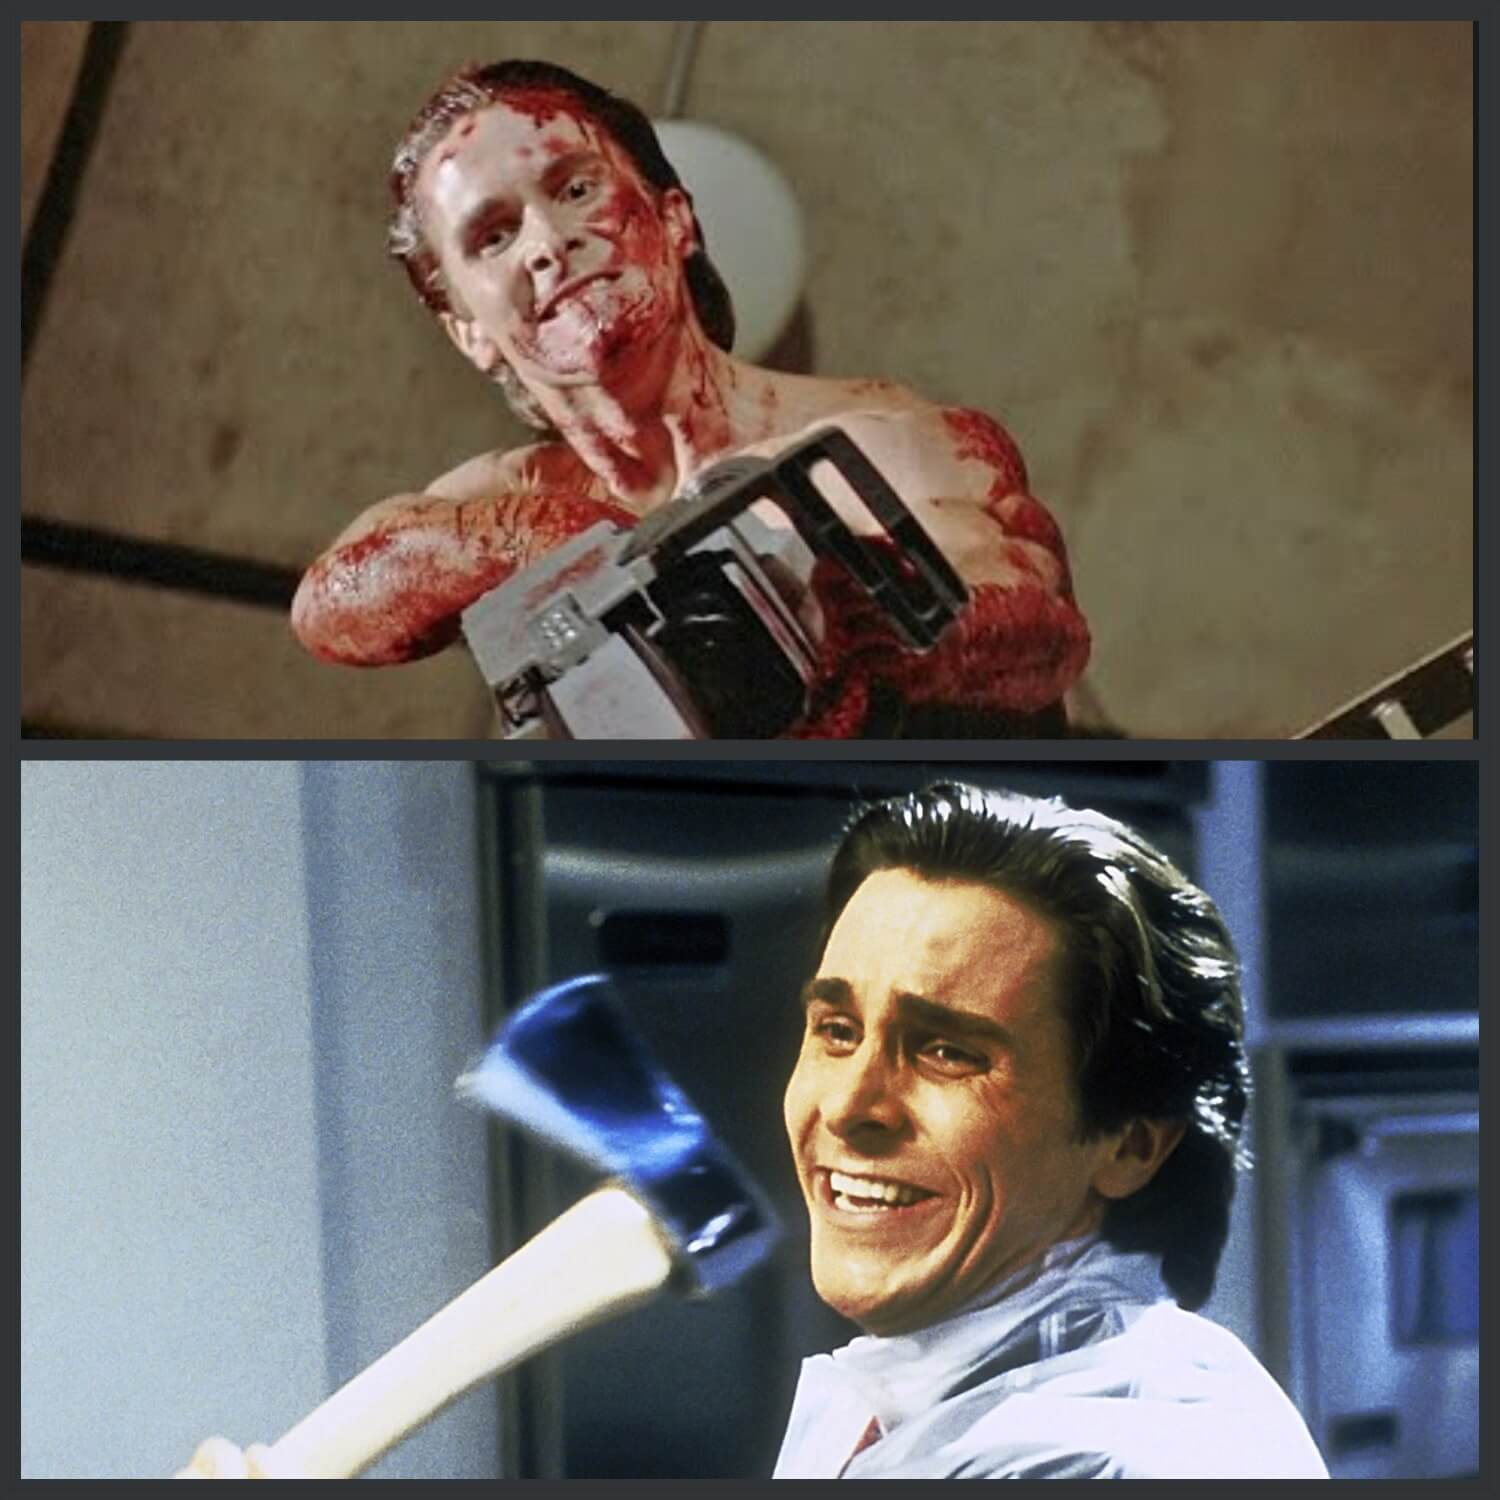 Different Patrick Bateman in Different Situations